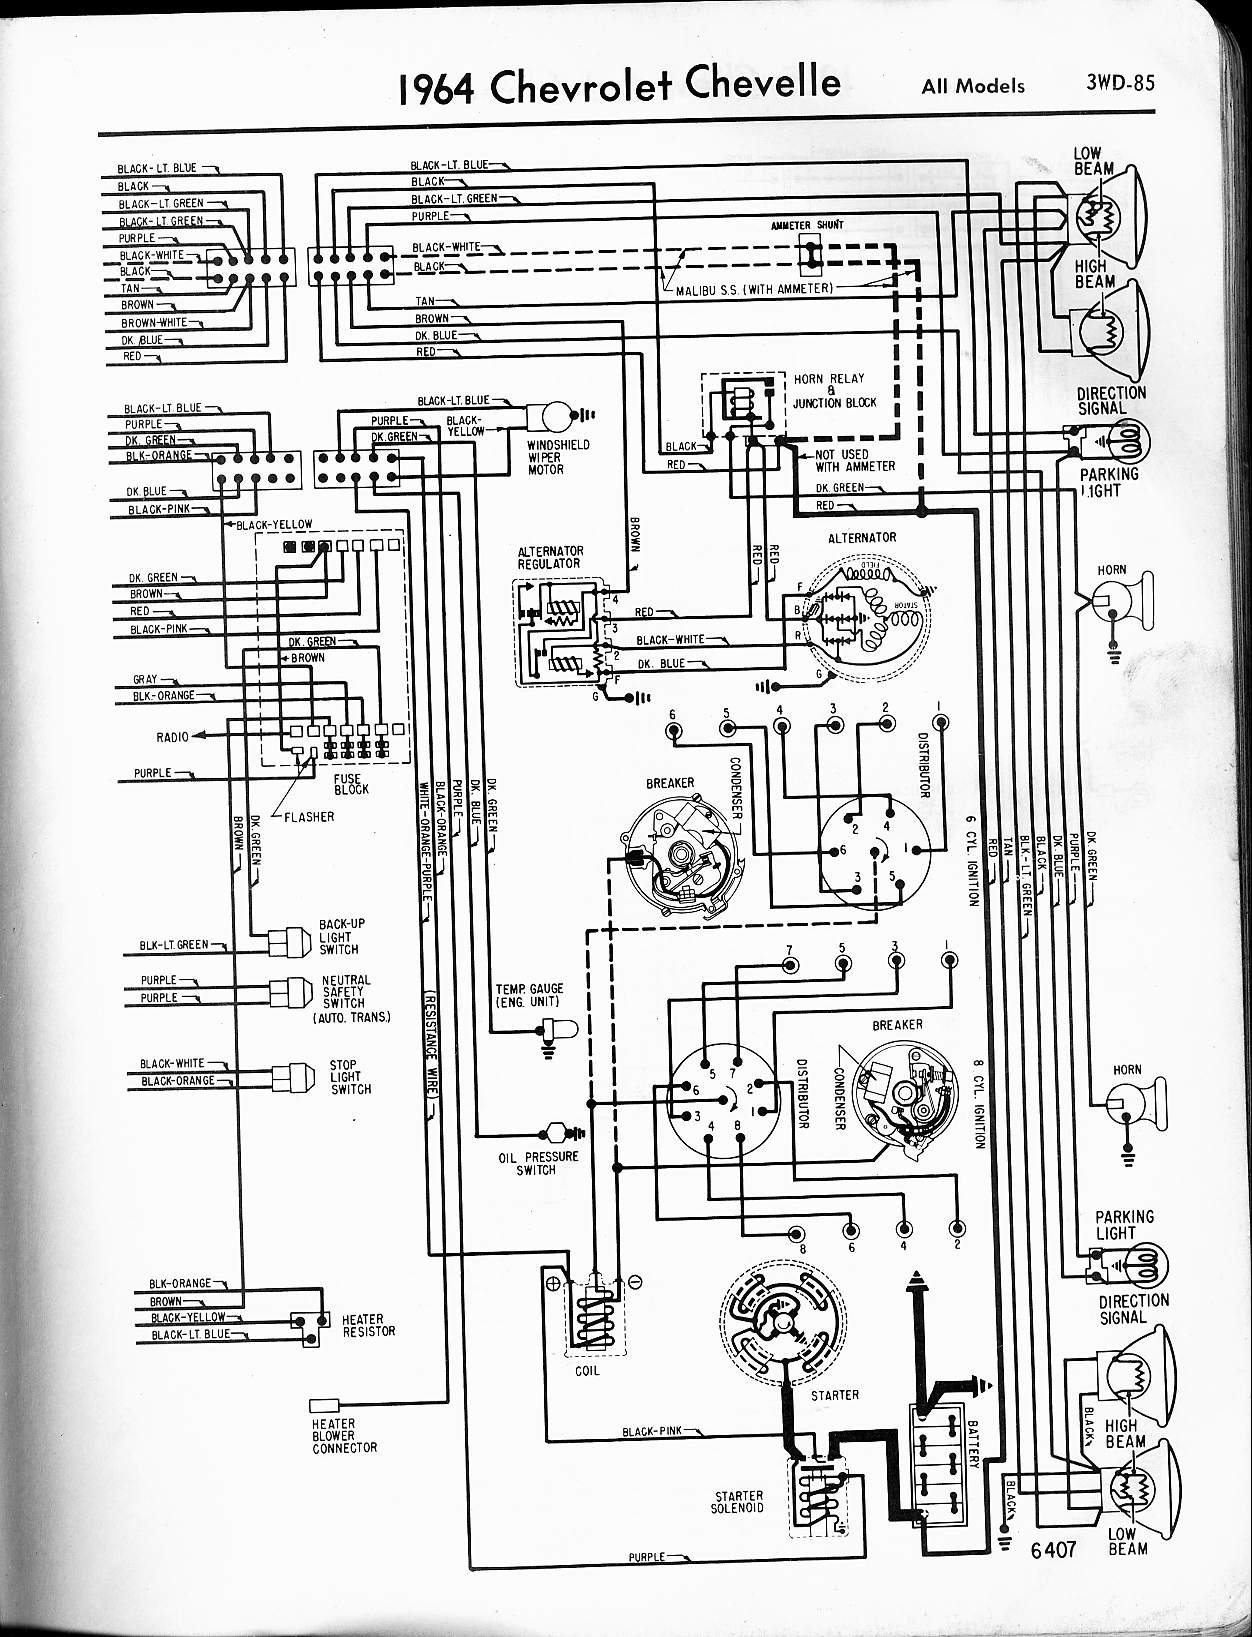 chevy diagrams rh wiring wizard com 2014 GMC Truck Electrical Wiring Diagrams 2000 GMC Truck Electrical Wiring Diagrams